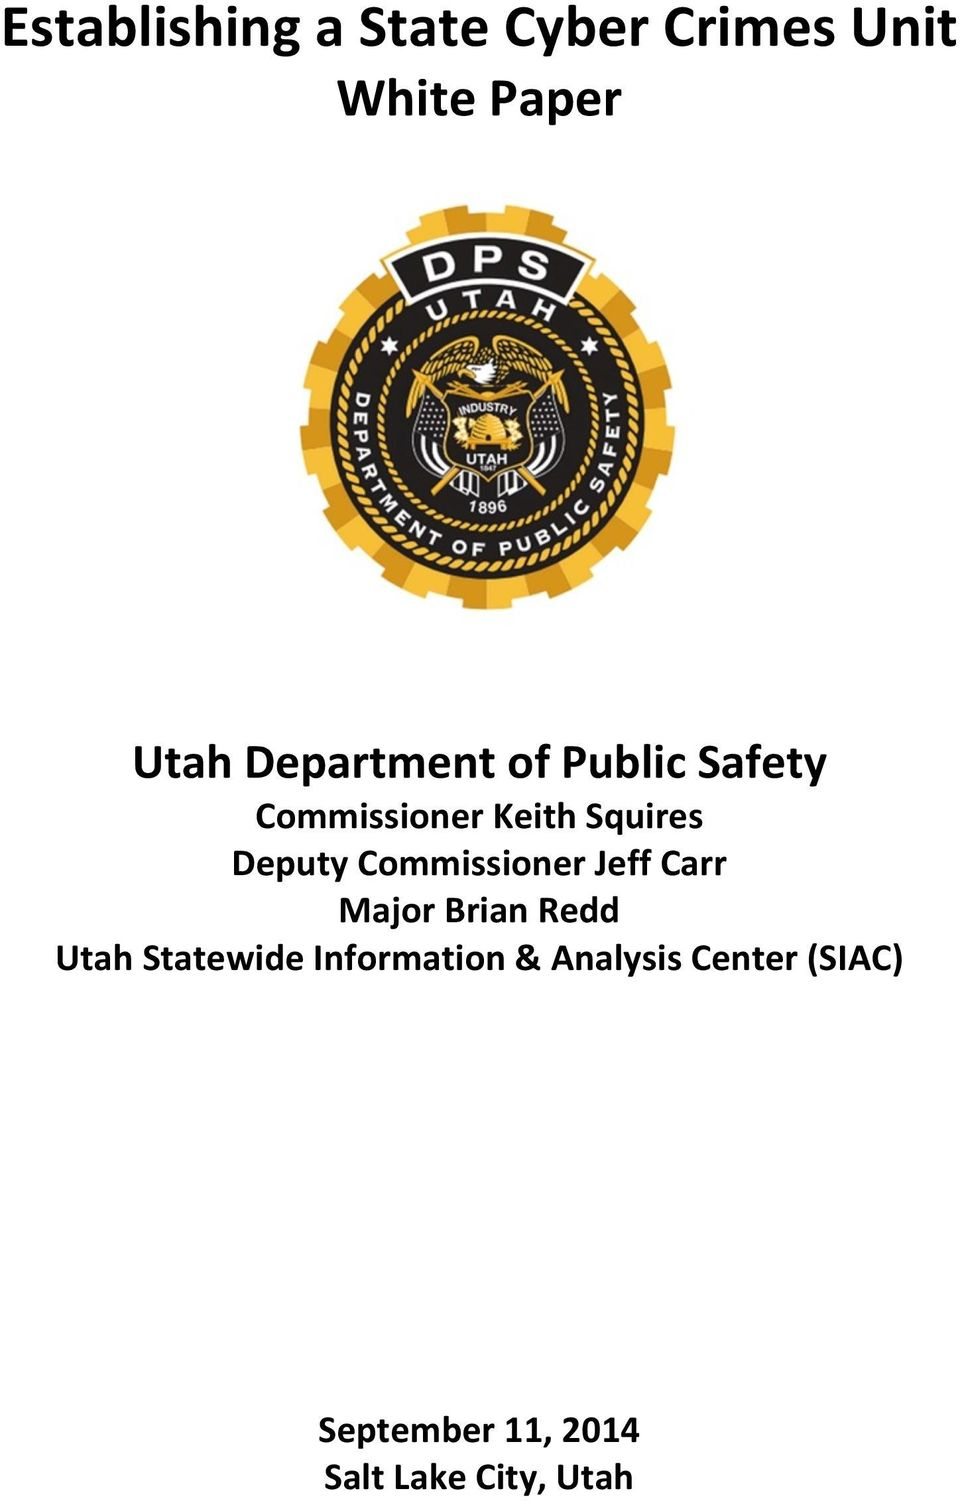 Commissioner Jeff Carr Major Brian Redd Utah Statewide